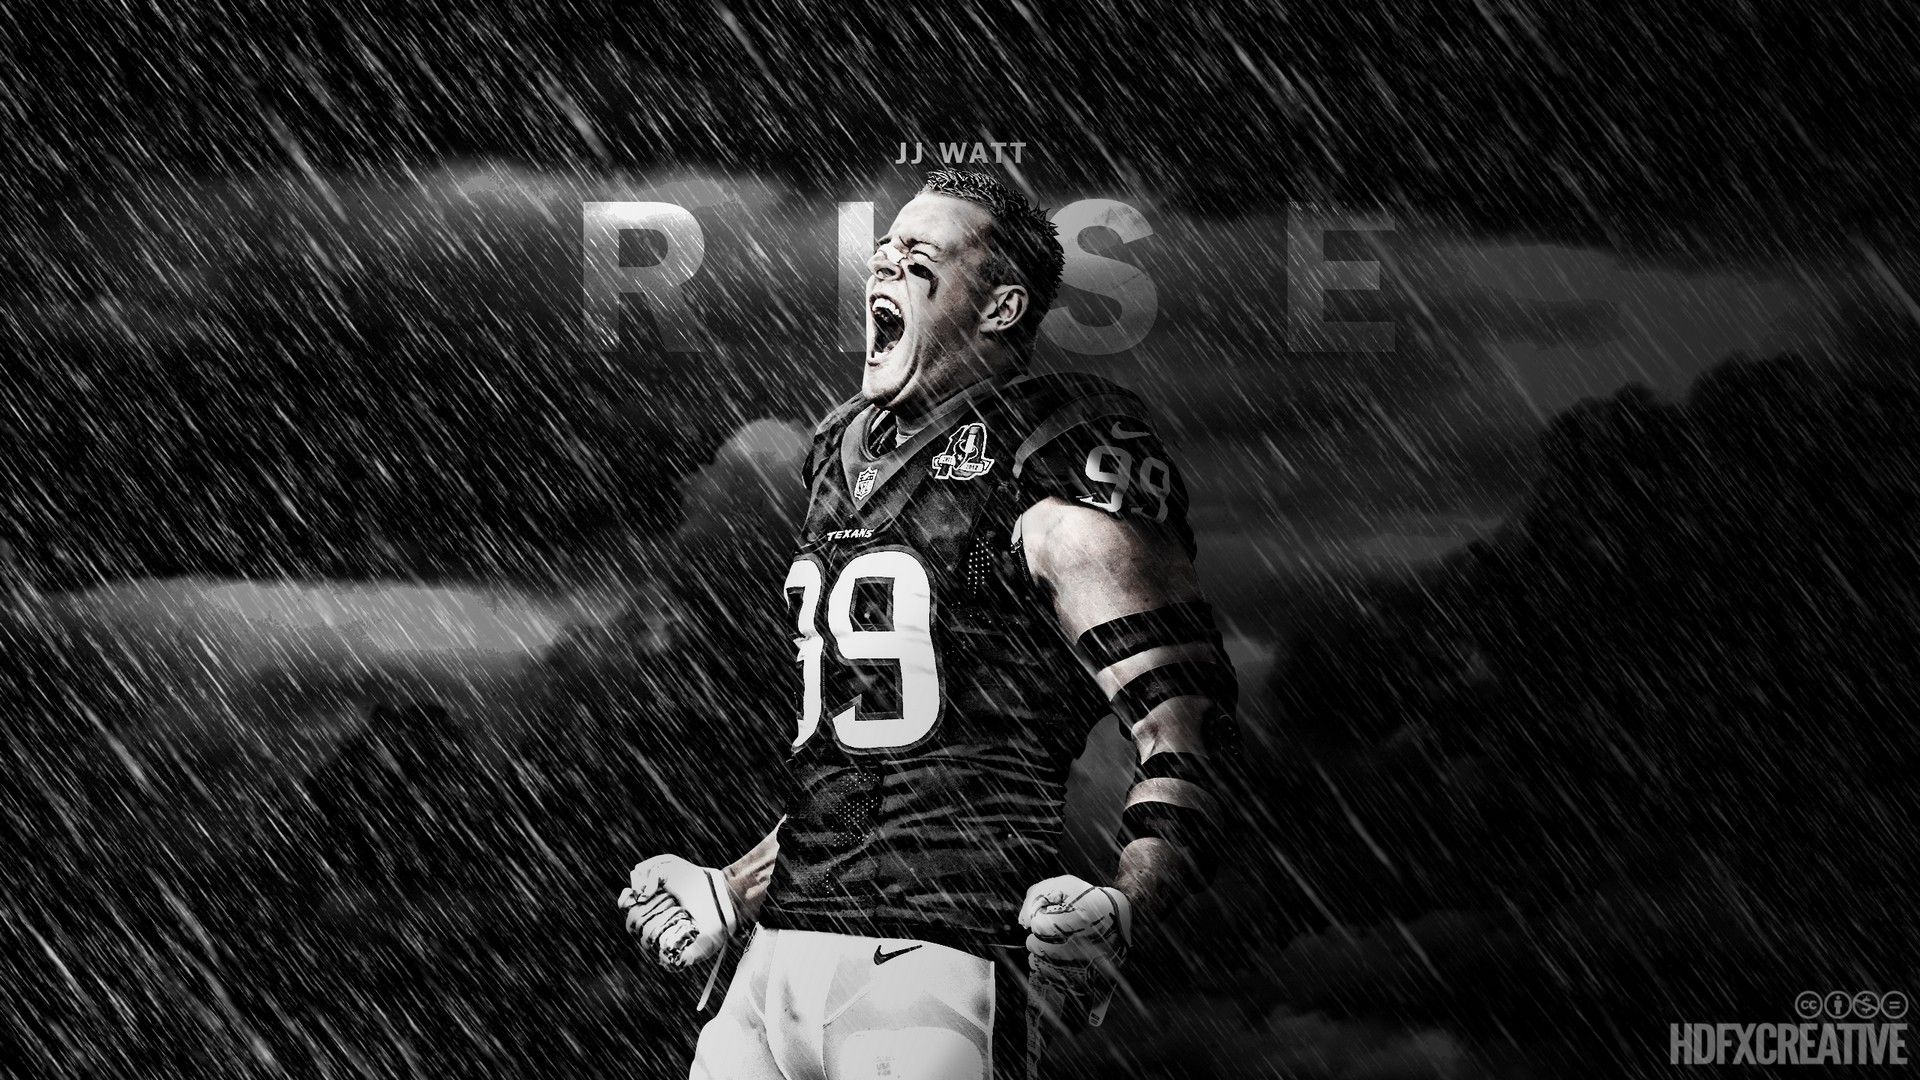 Nfl Players Wallpaper Hd 2020 Nfl Football Wallpapers Nfl Football Wallpaper Football Wallpaper Jj Watt